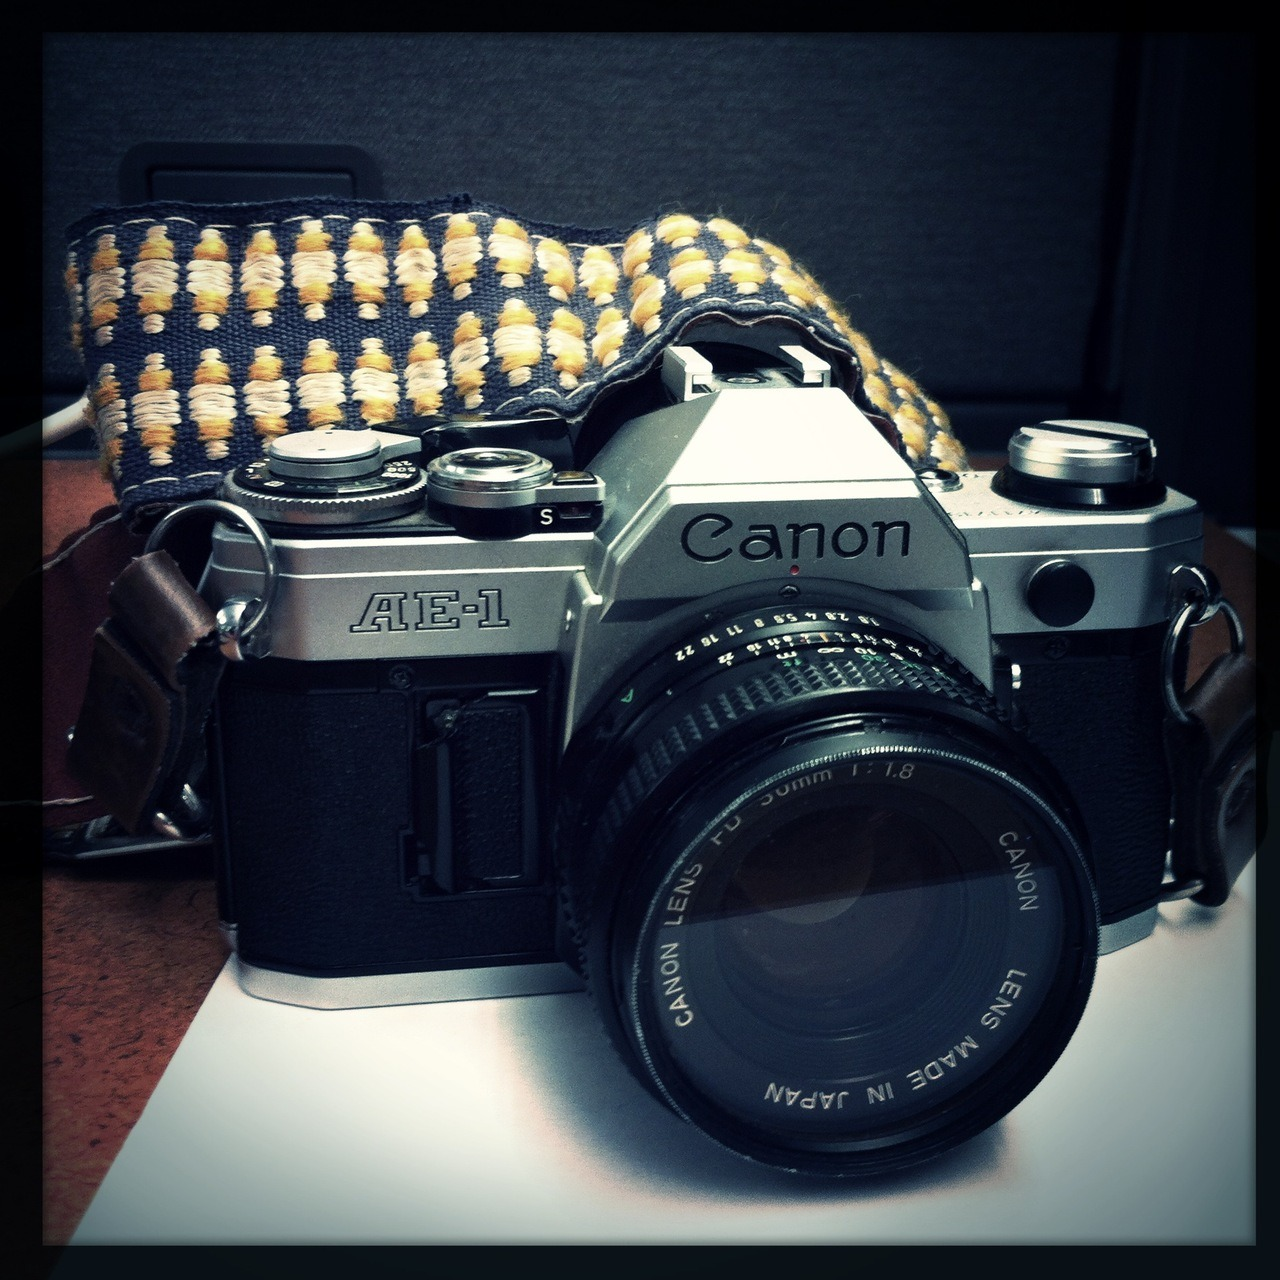 My latest thrift store camera acquisition: A Canon AE-1. Fully functional, if well used; $20. Wonder Lens, W40 Film, No Flash, Taken with Hipstamatic